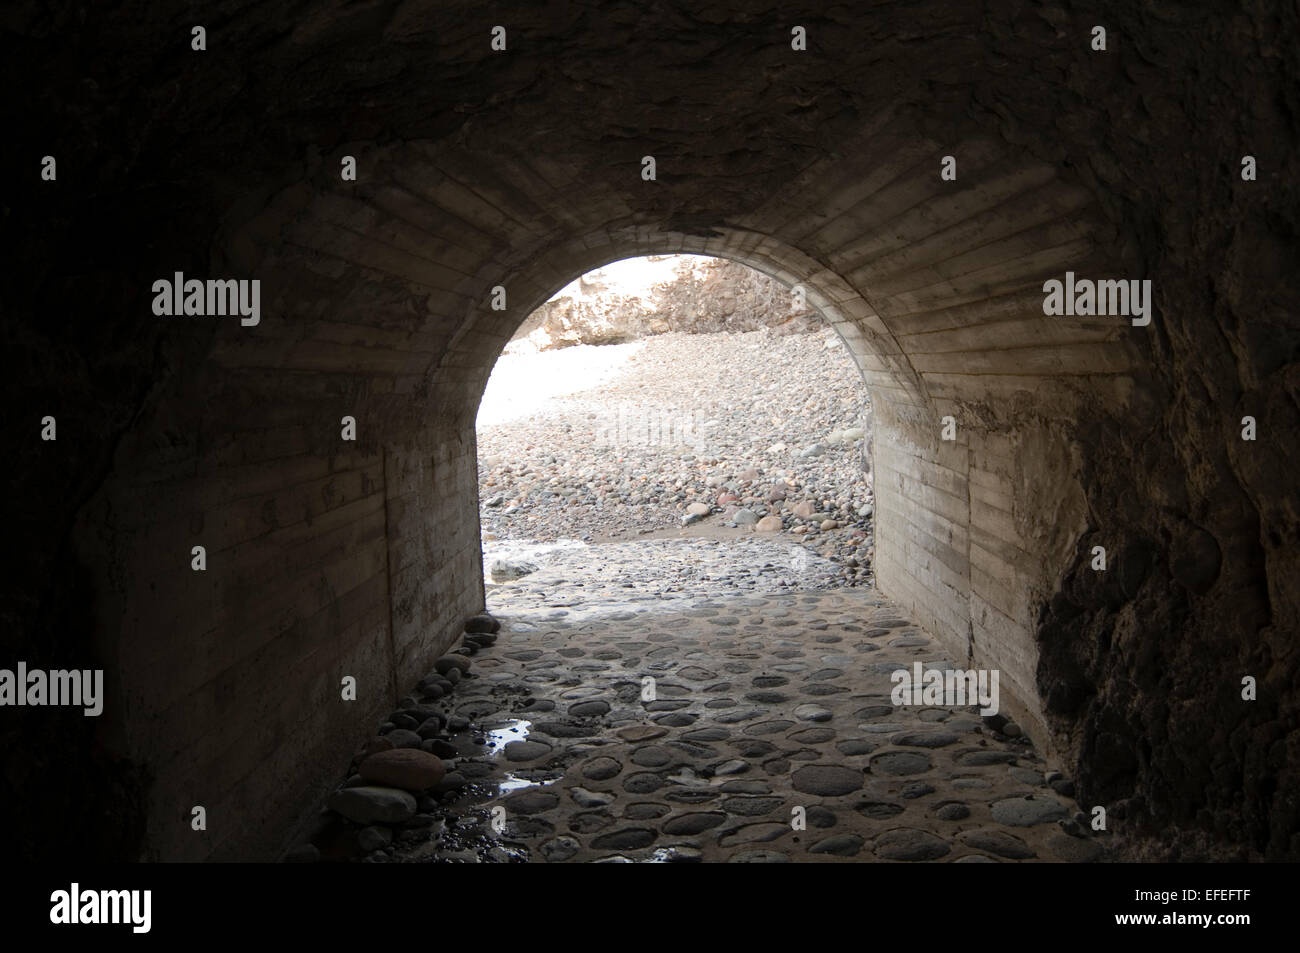 tunnel tunnels secret private beach beaches stone stony out of the darkness into the light emerging escape Stock Photo